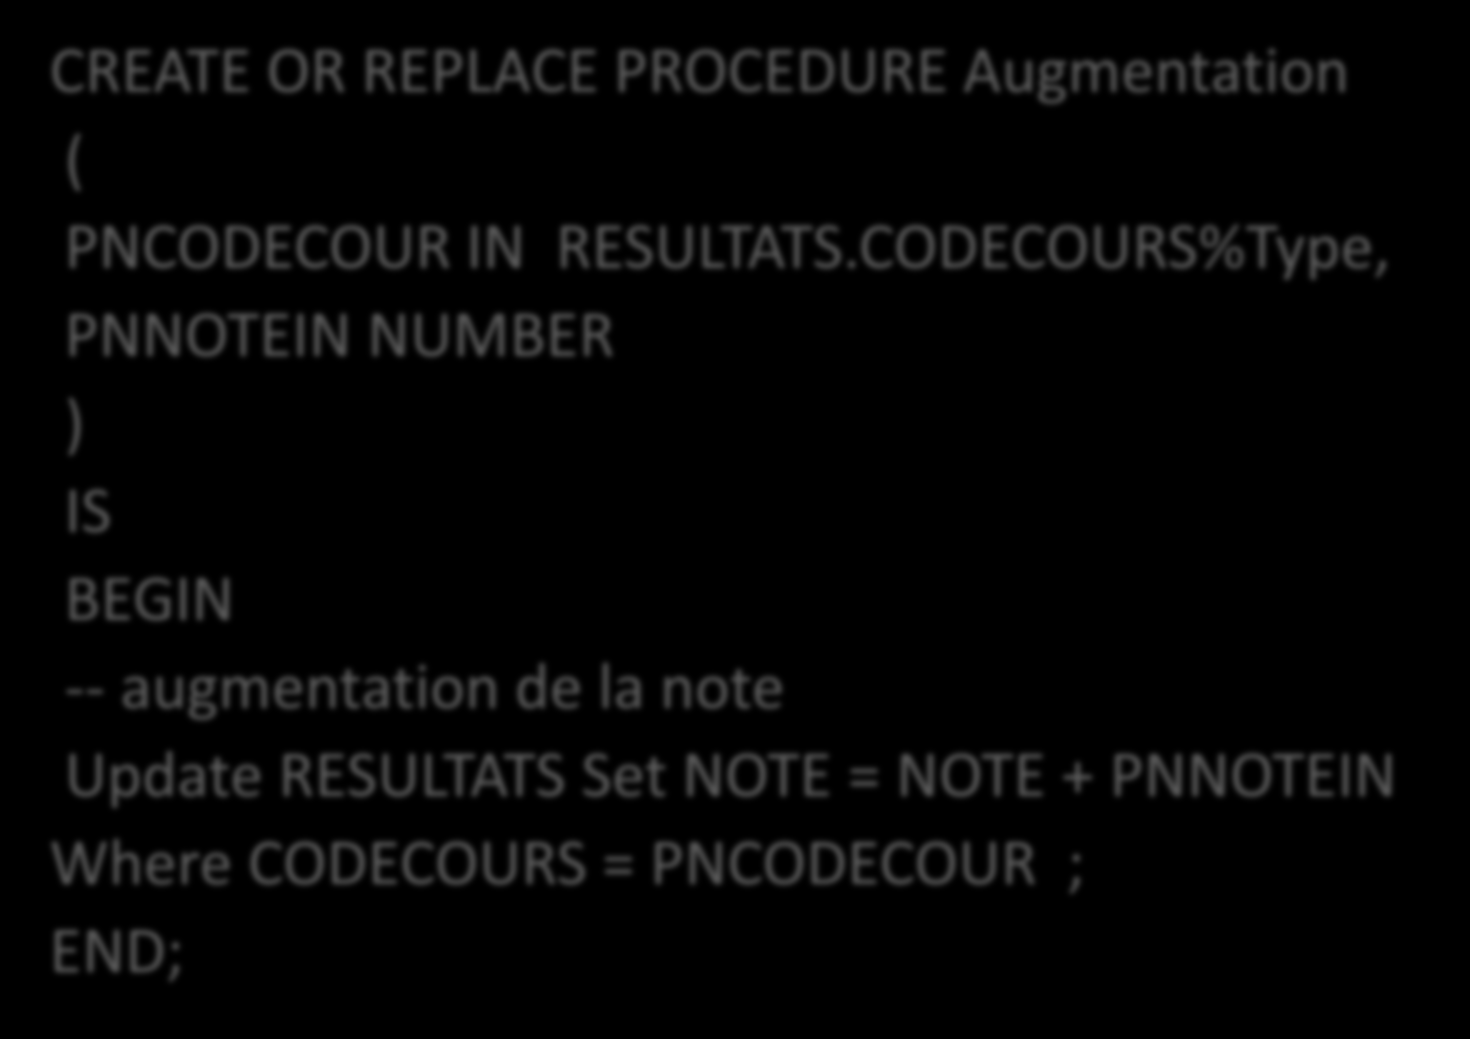 Exemple CREATE OR REPLACE PROCEDURE Augmentation ( PNCODECOUR IN RESULTATS.